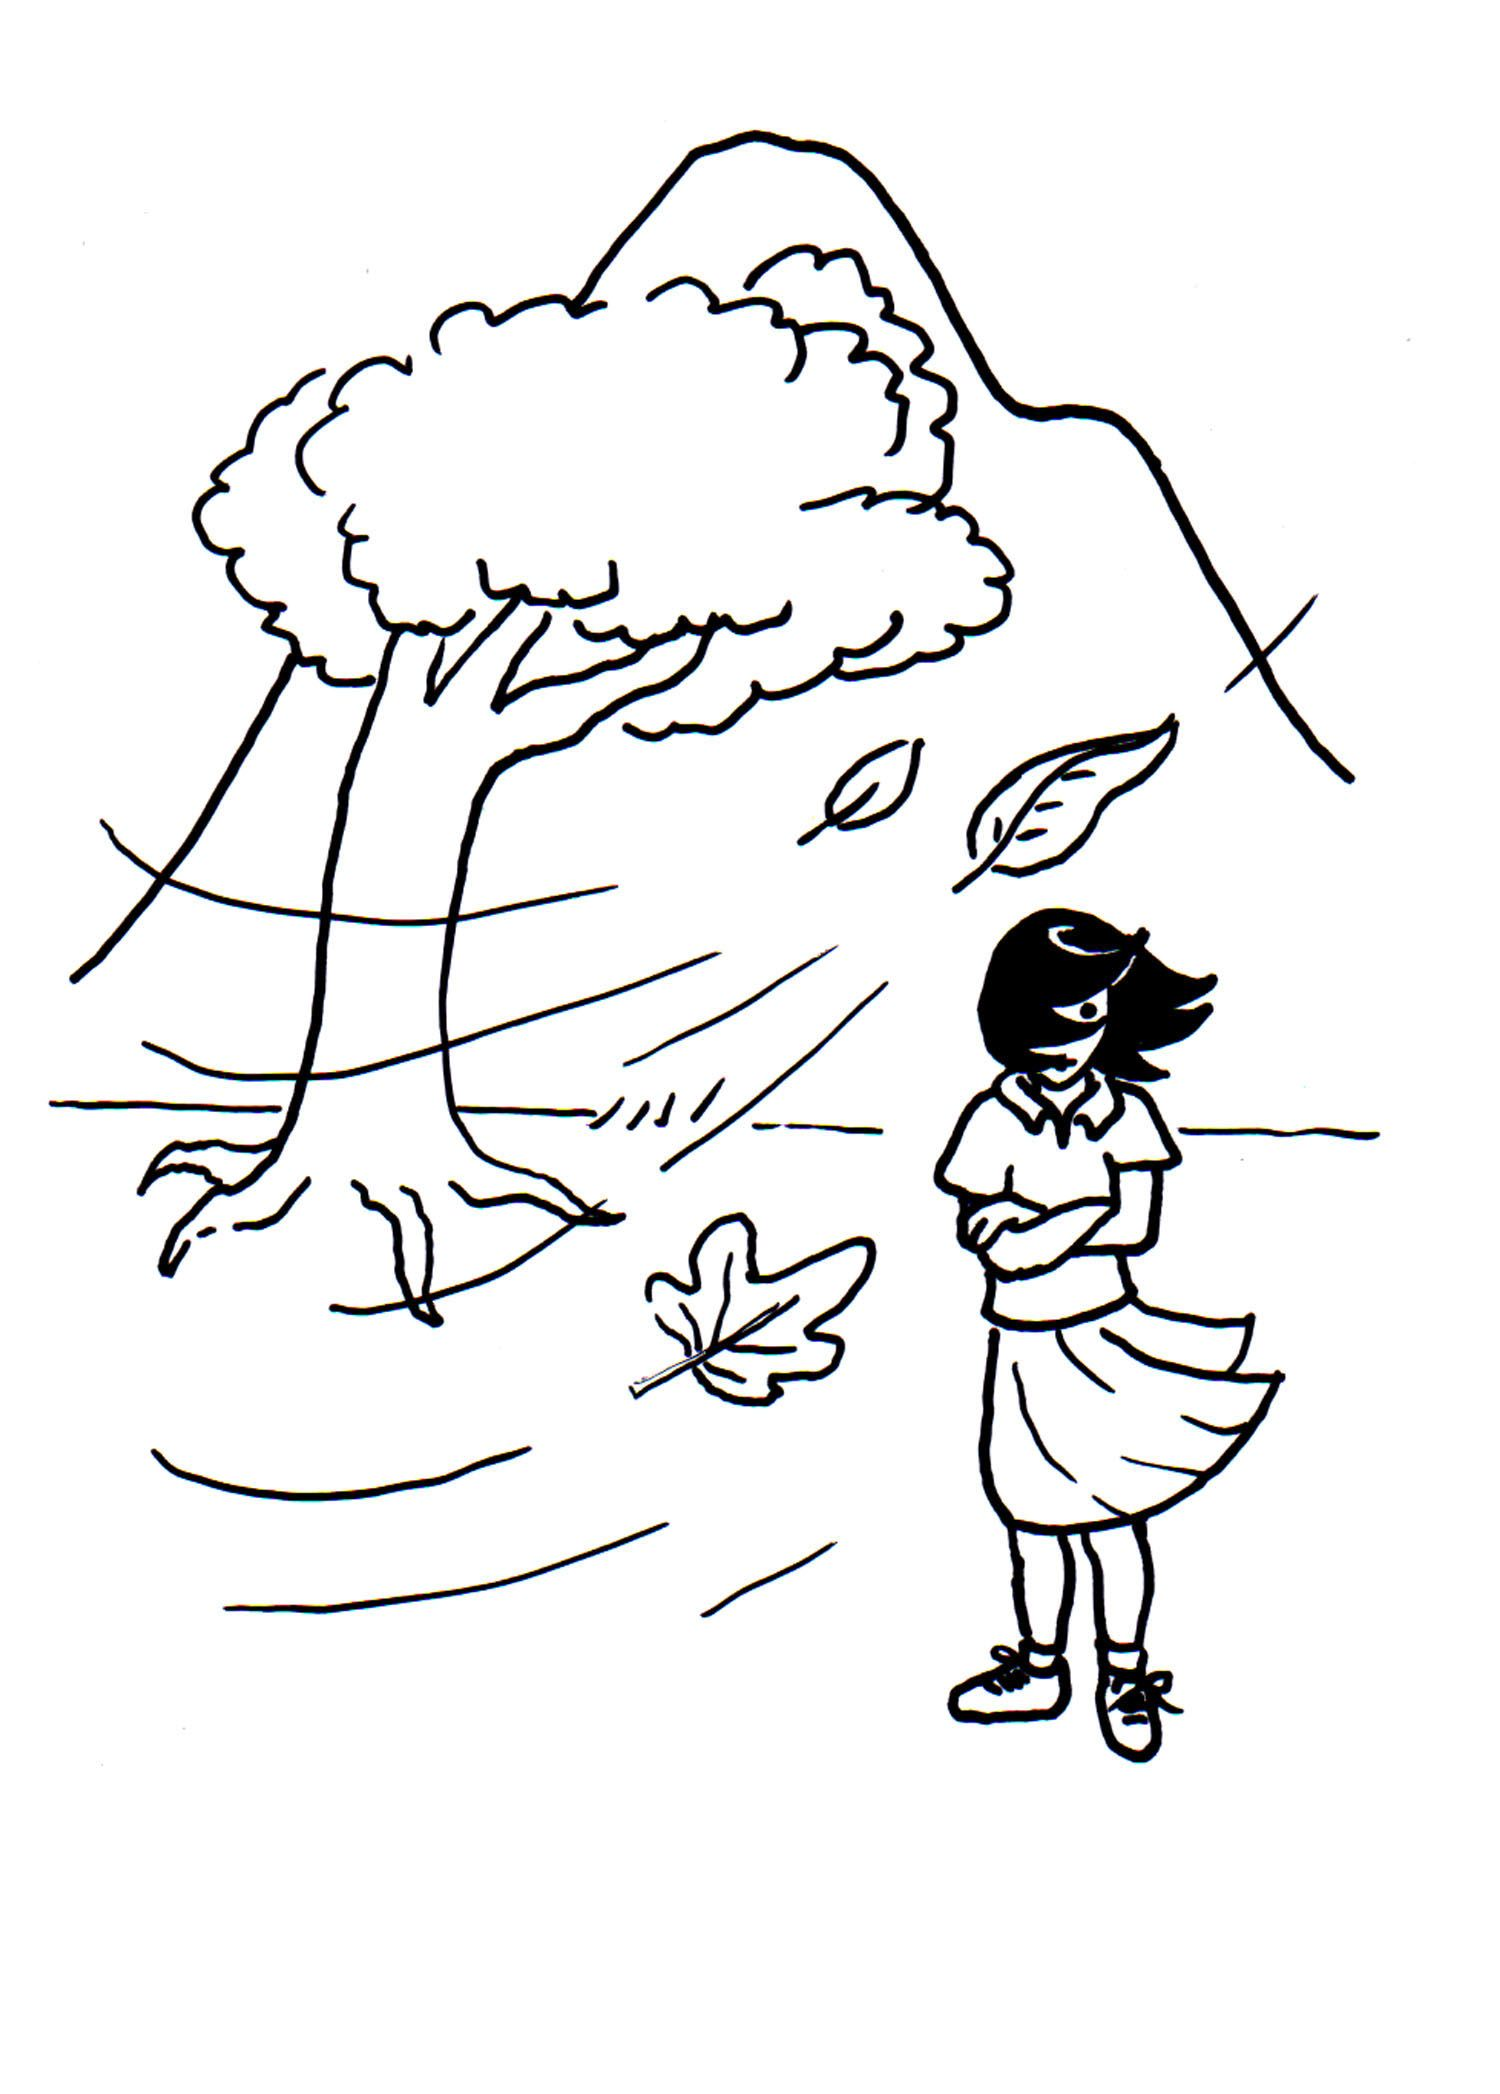 Hurricane Coloring Pages Best Coloring Pages For Kids Kindergarten Worksheets Coloring Pages Coloring Pages For Kids